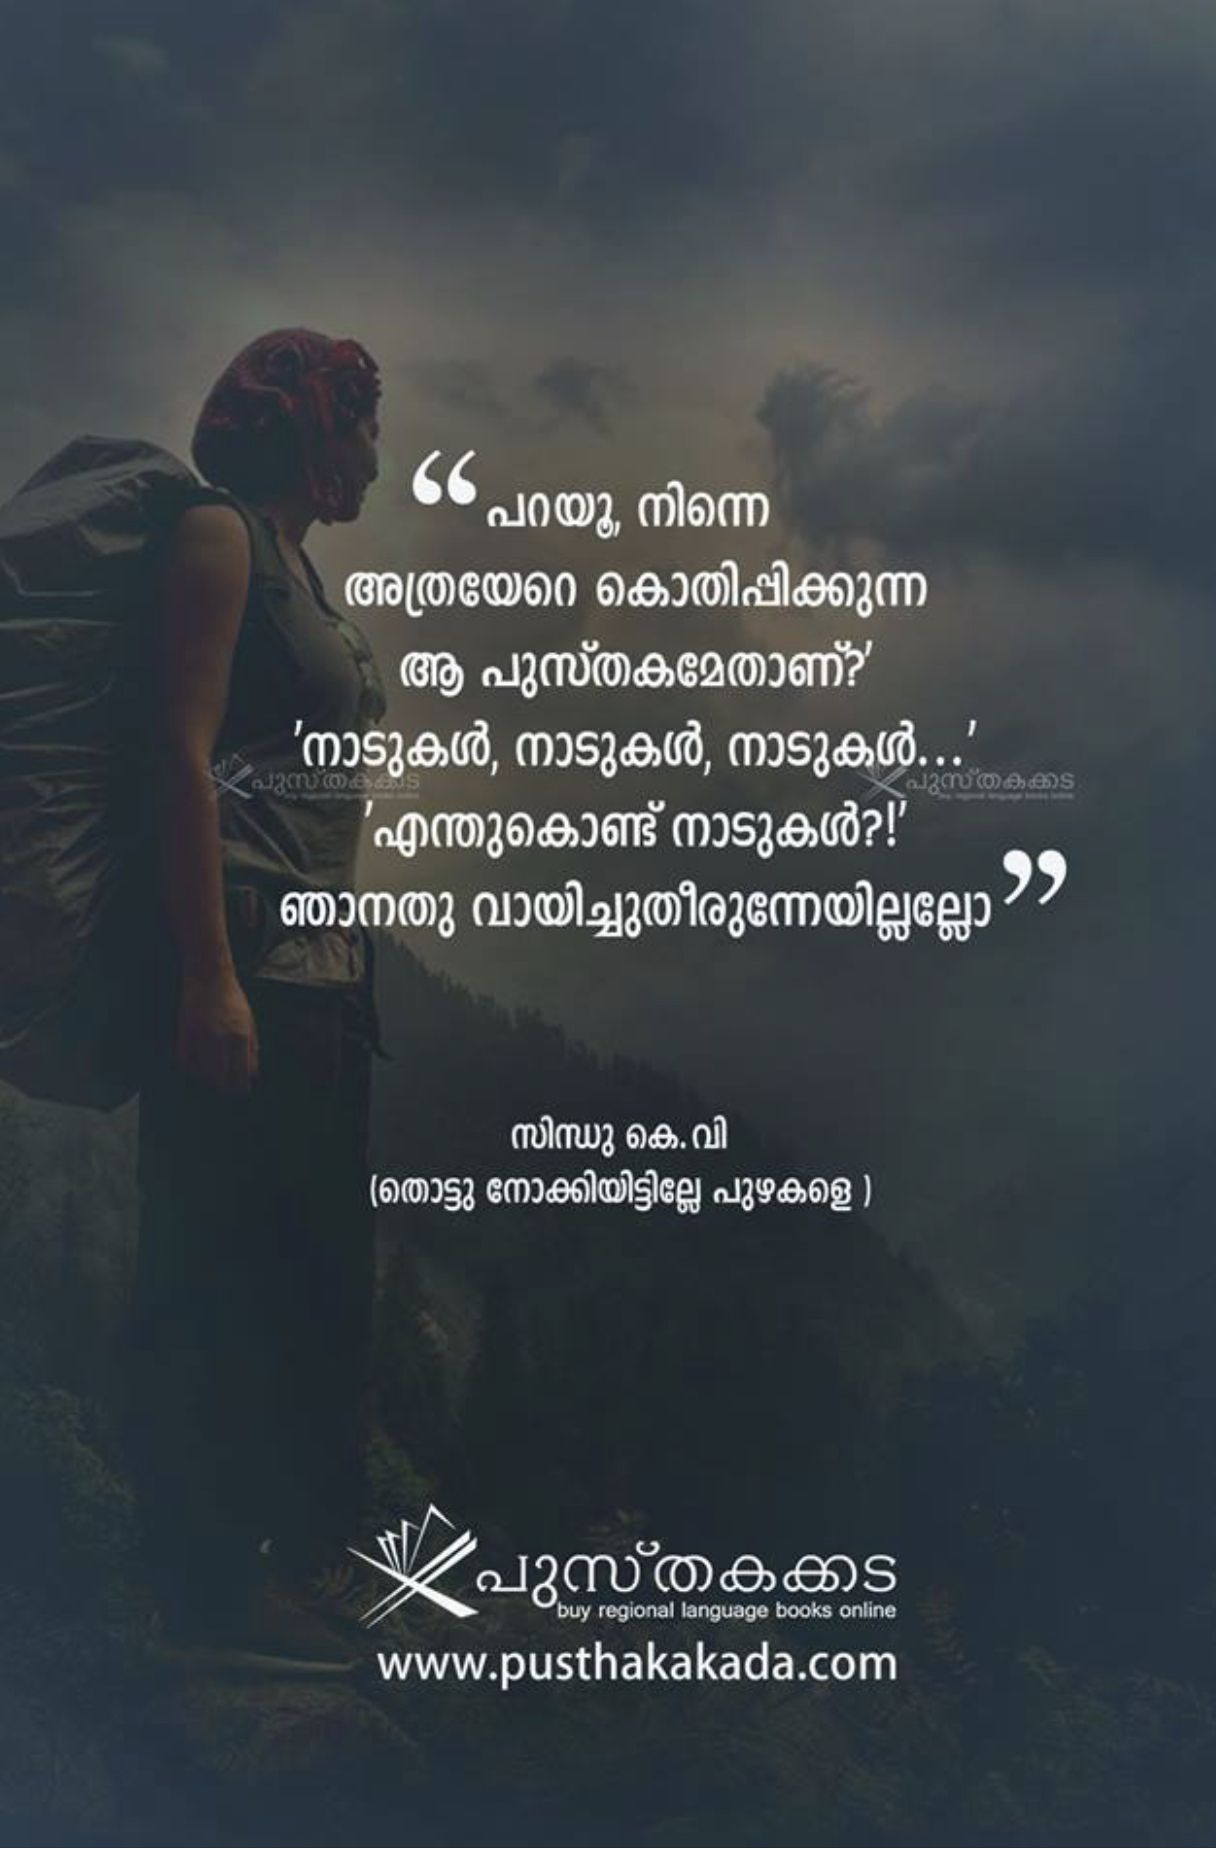 Pin by 𝓜𝓳 on Malayalam quotes  Malayalam quotes, Confidence